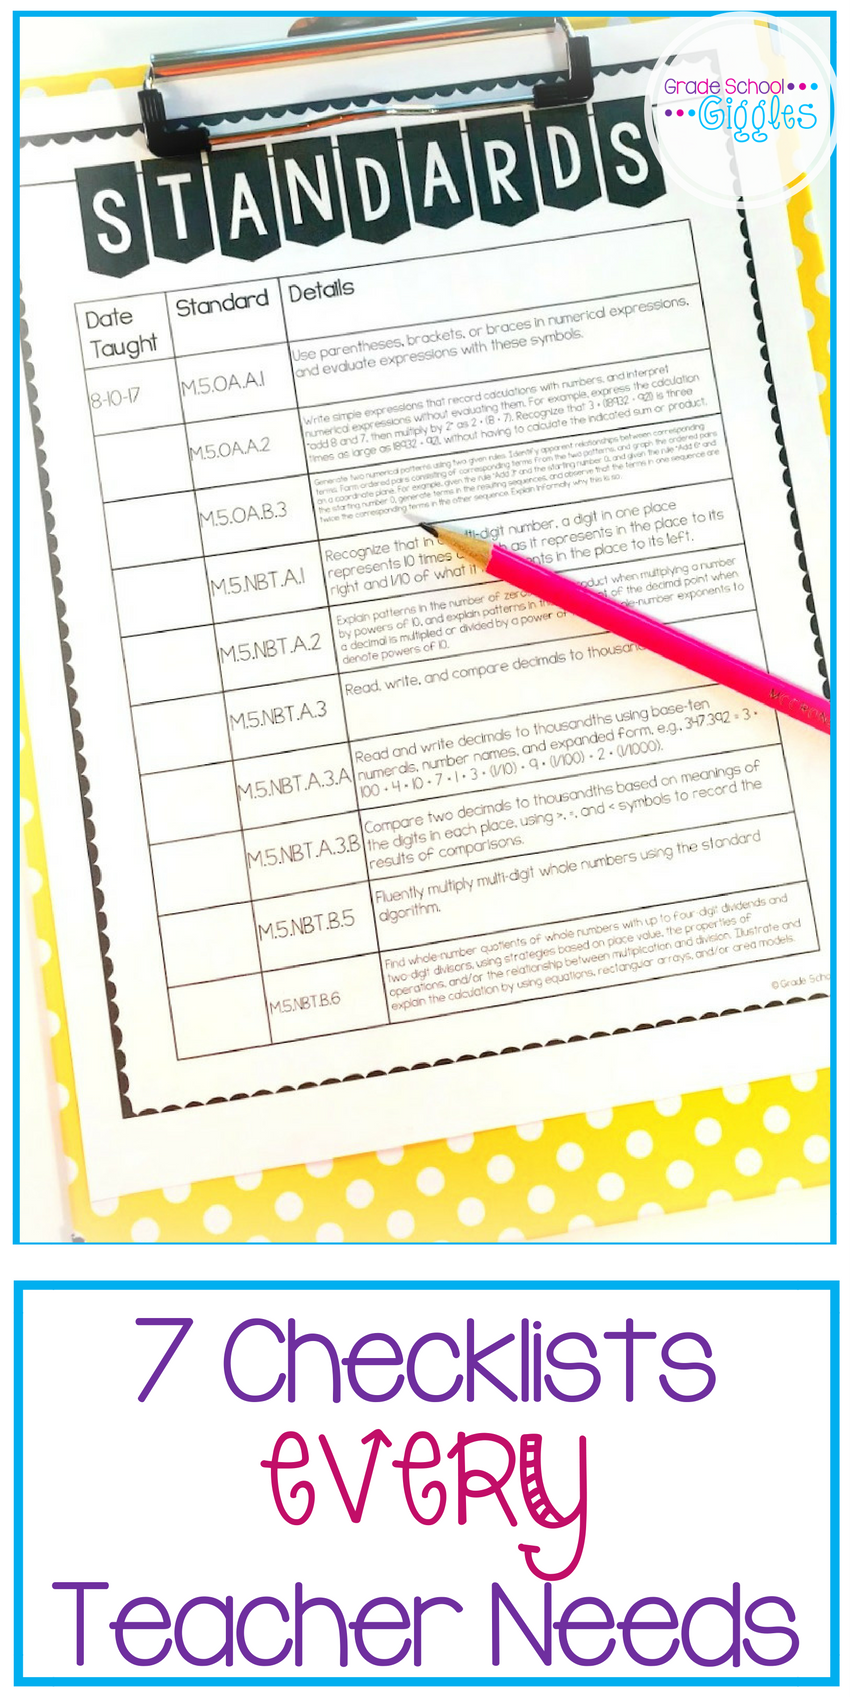 Do You Have These 7 Checklists Every Teacher Needs?